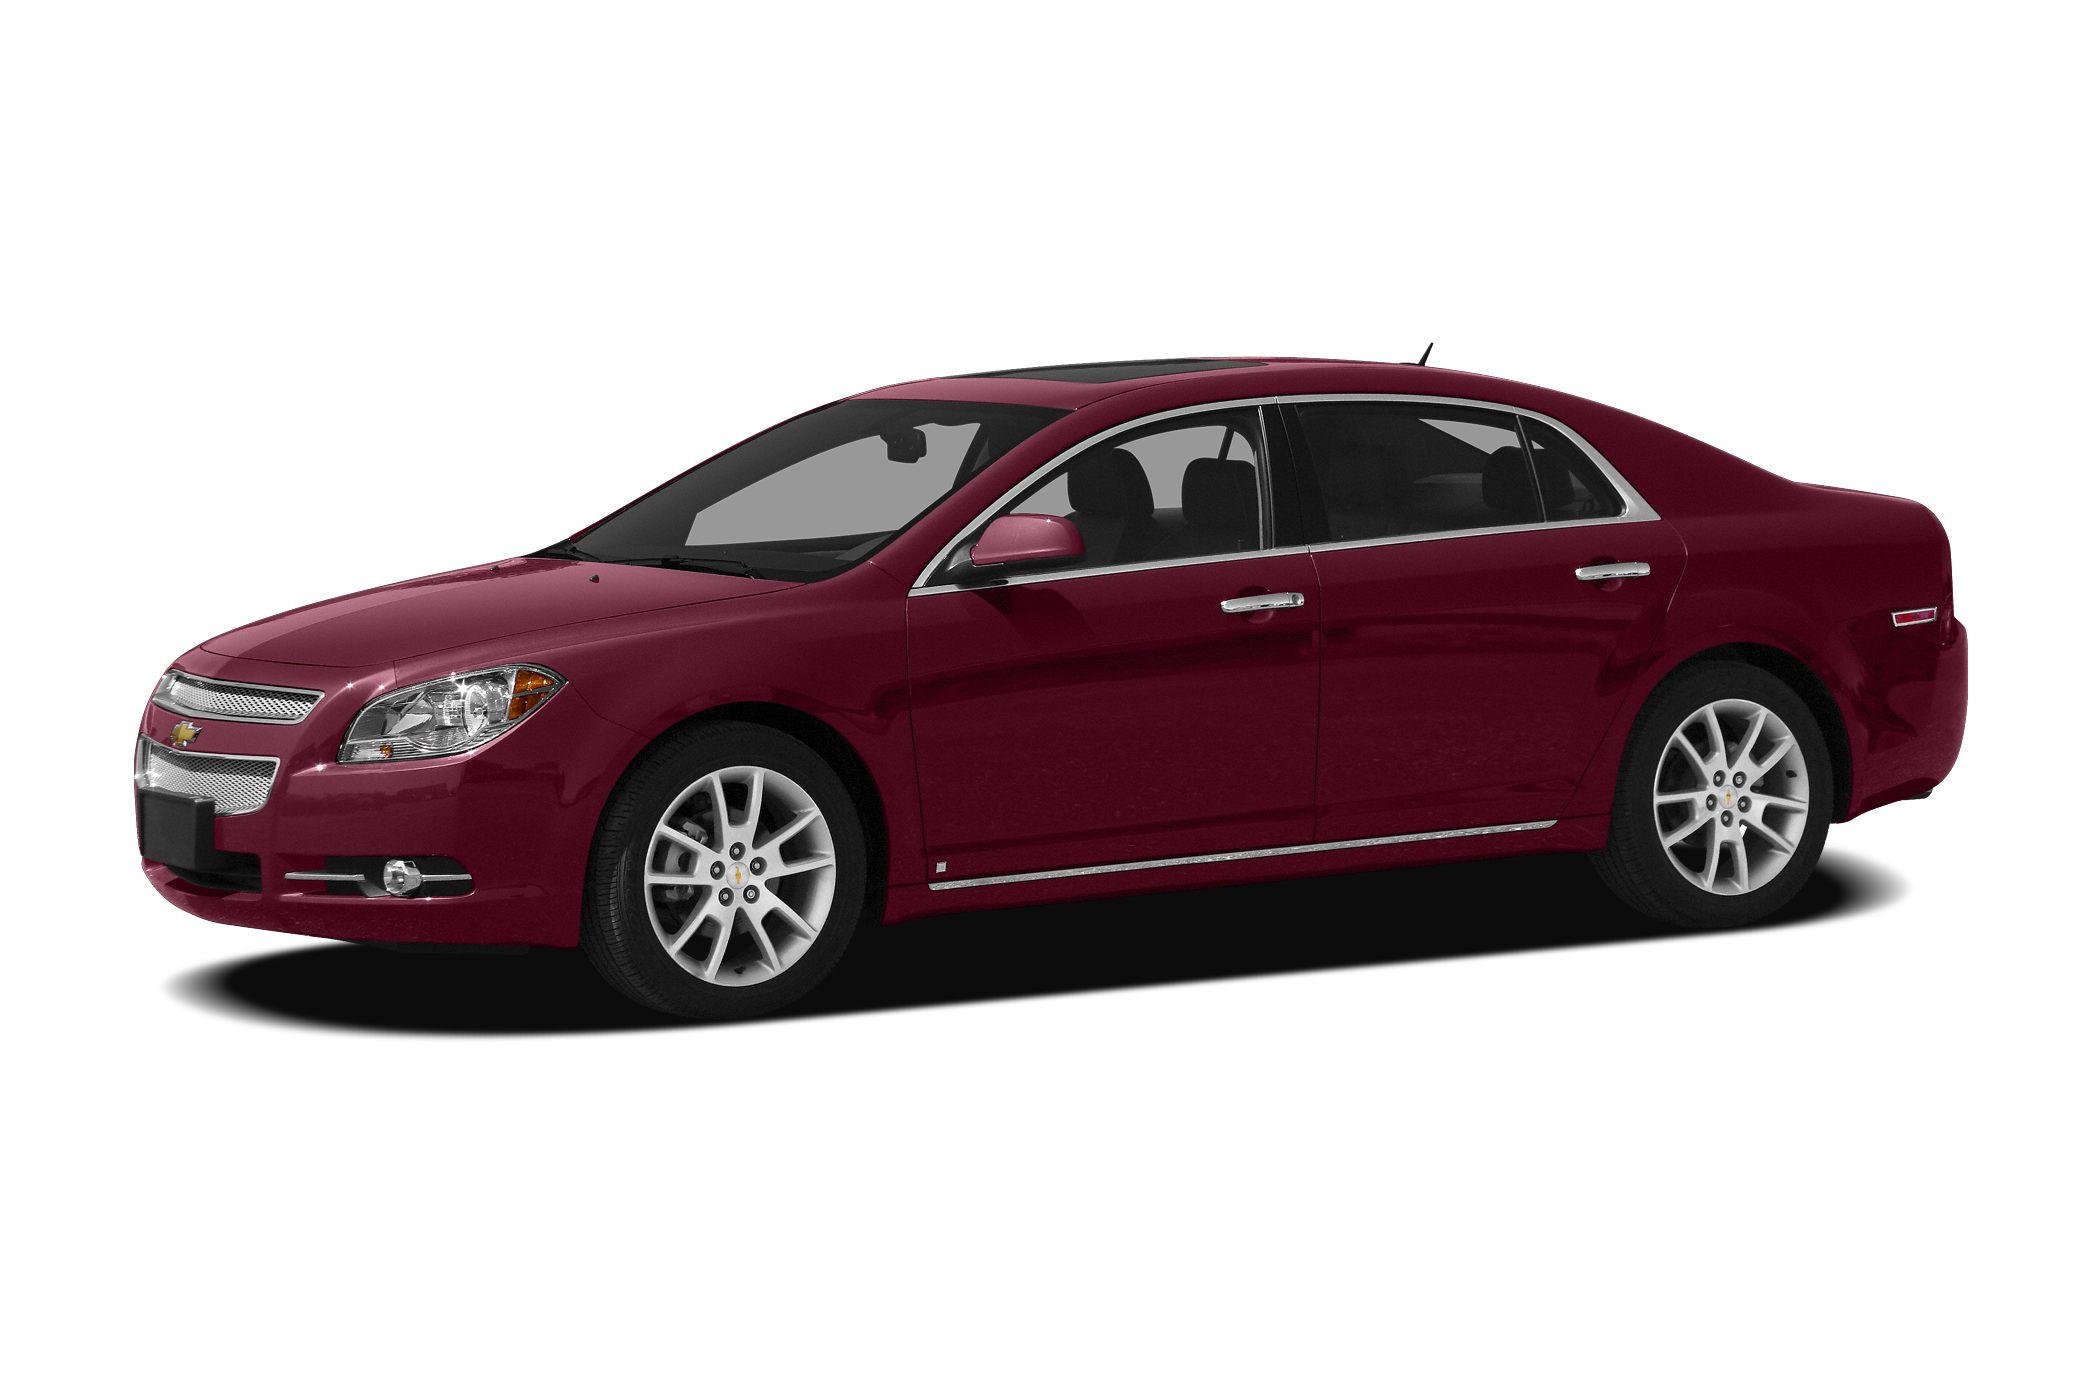 2009 Chevrolet Malibu LS Sedan for sale in Humboldt for $10,995 with 81,671 miles.